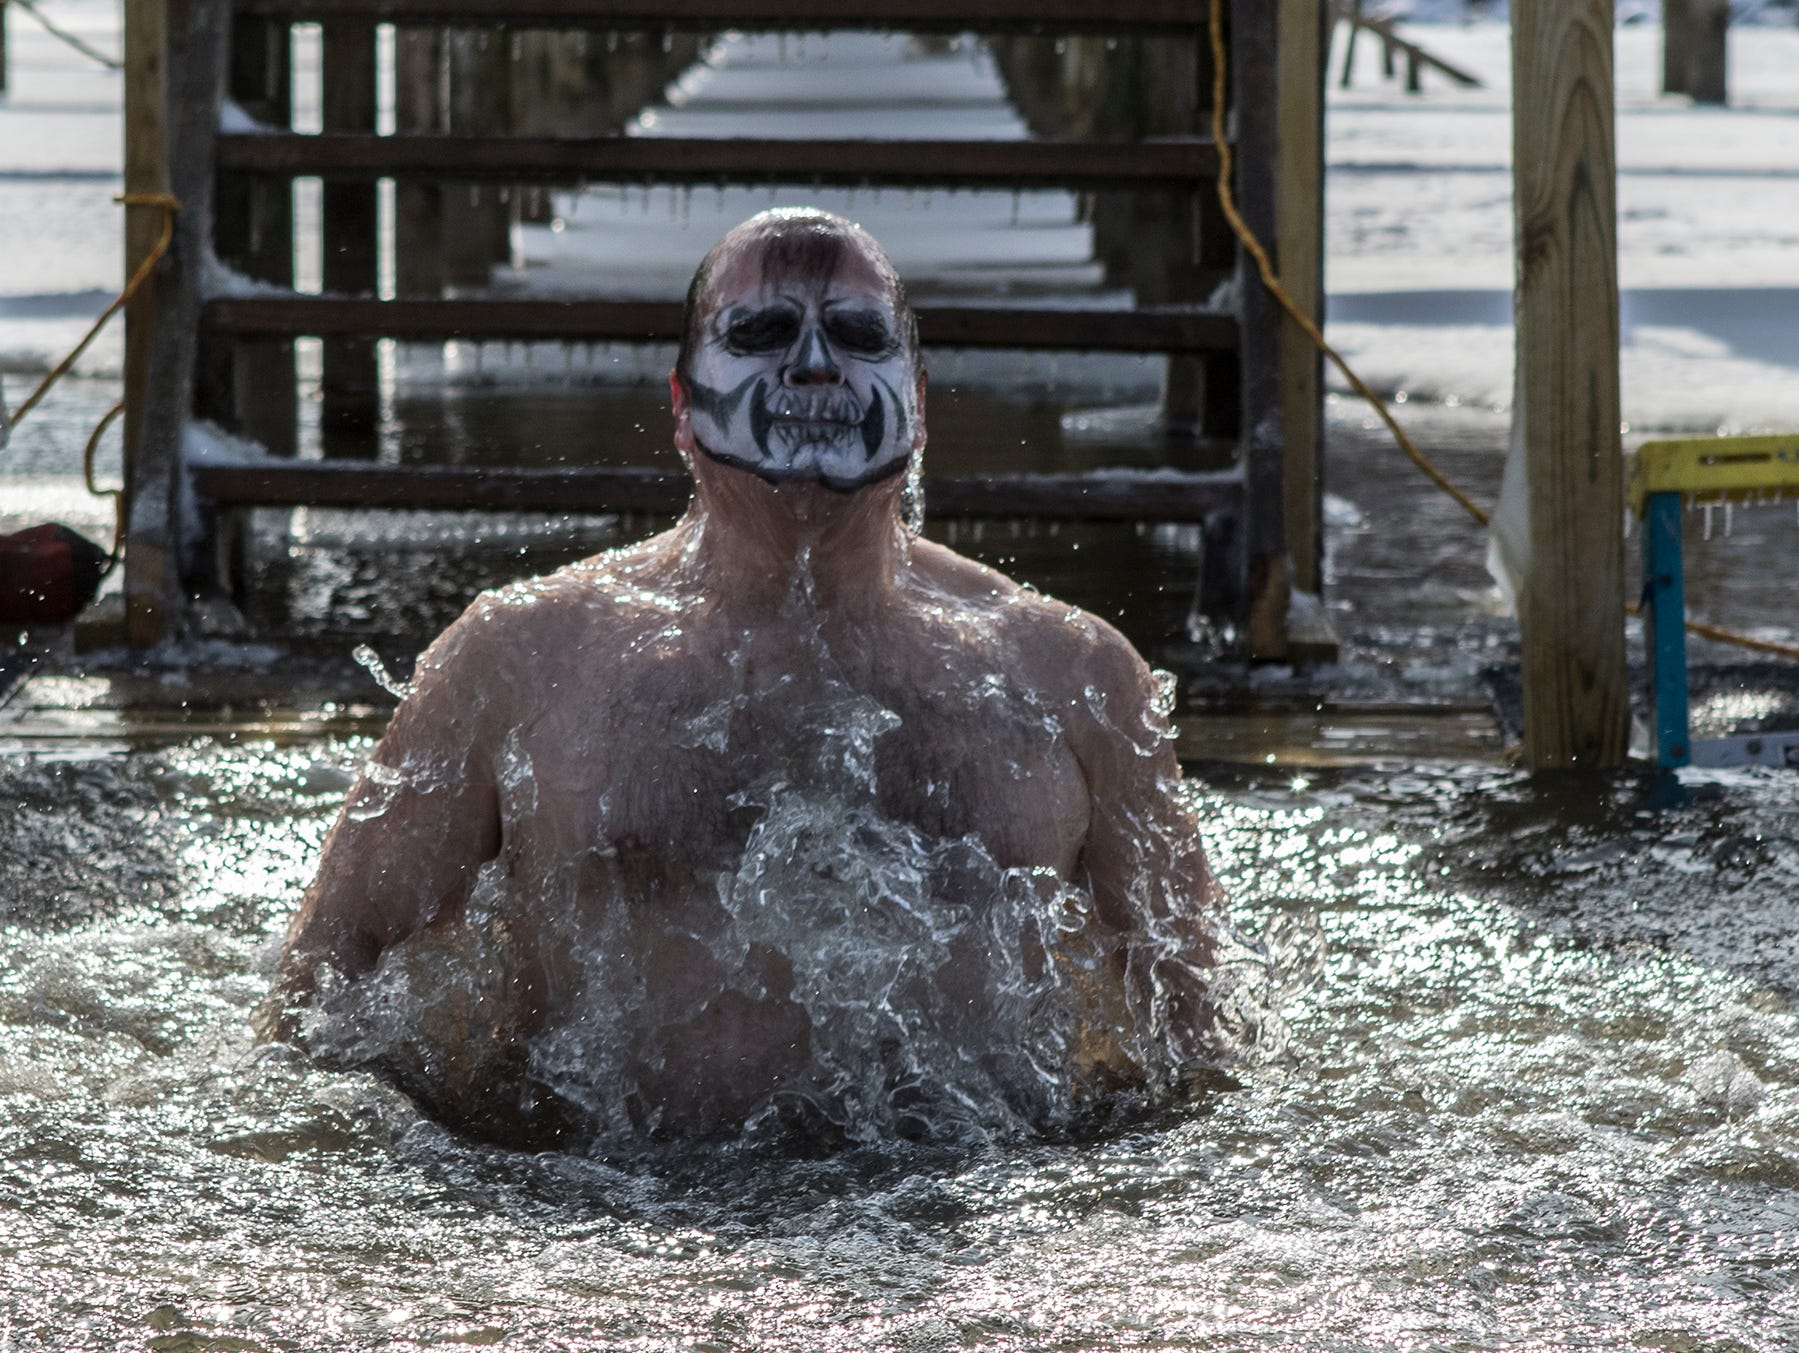 Ron Gillespie of Bexley, emerges from the water at Buckeye Lake after jumping in Sunday in 20 degree weather. Before jumping Gillespie shouted out this was the dumbest thing he'd ever done. Around 20 people walked down the pier at Buckeye Lake Winery to jump into Buckeye Lake Sunday for the annual Polar Plunge.